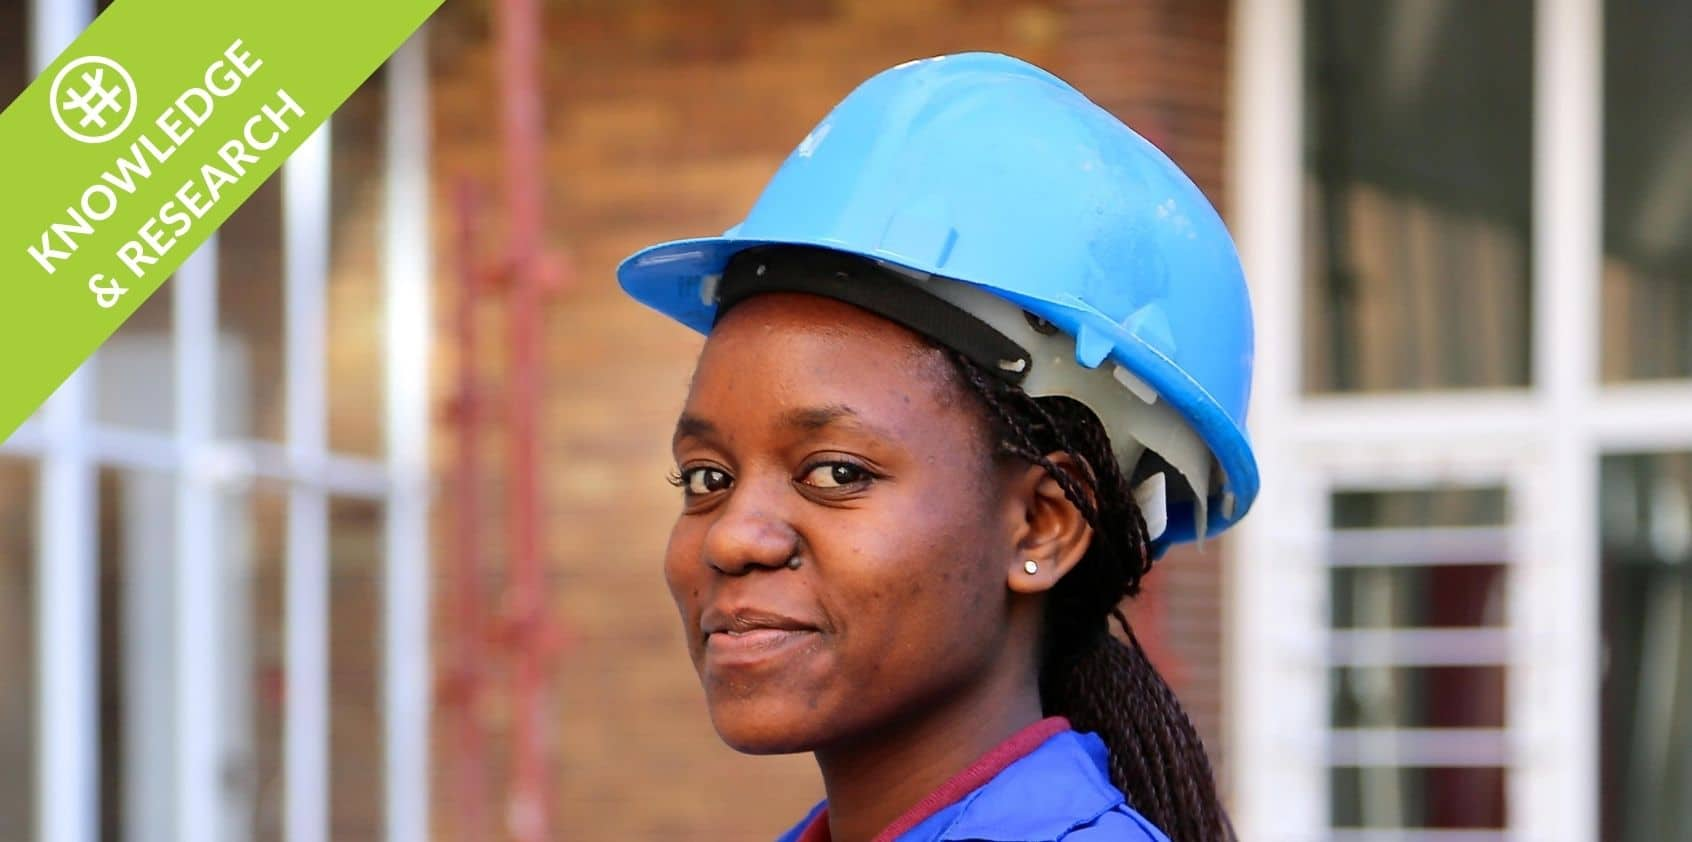 LEARNING BRIEF_GENDER INEQUALITY_HARAMBEE'S LESSONS IN THE LABOUR MARKET_header image